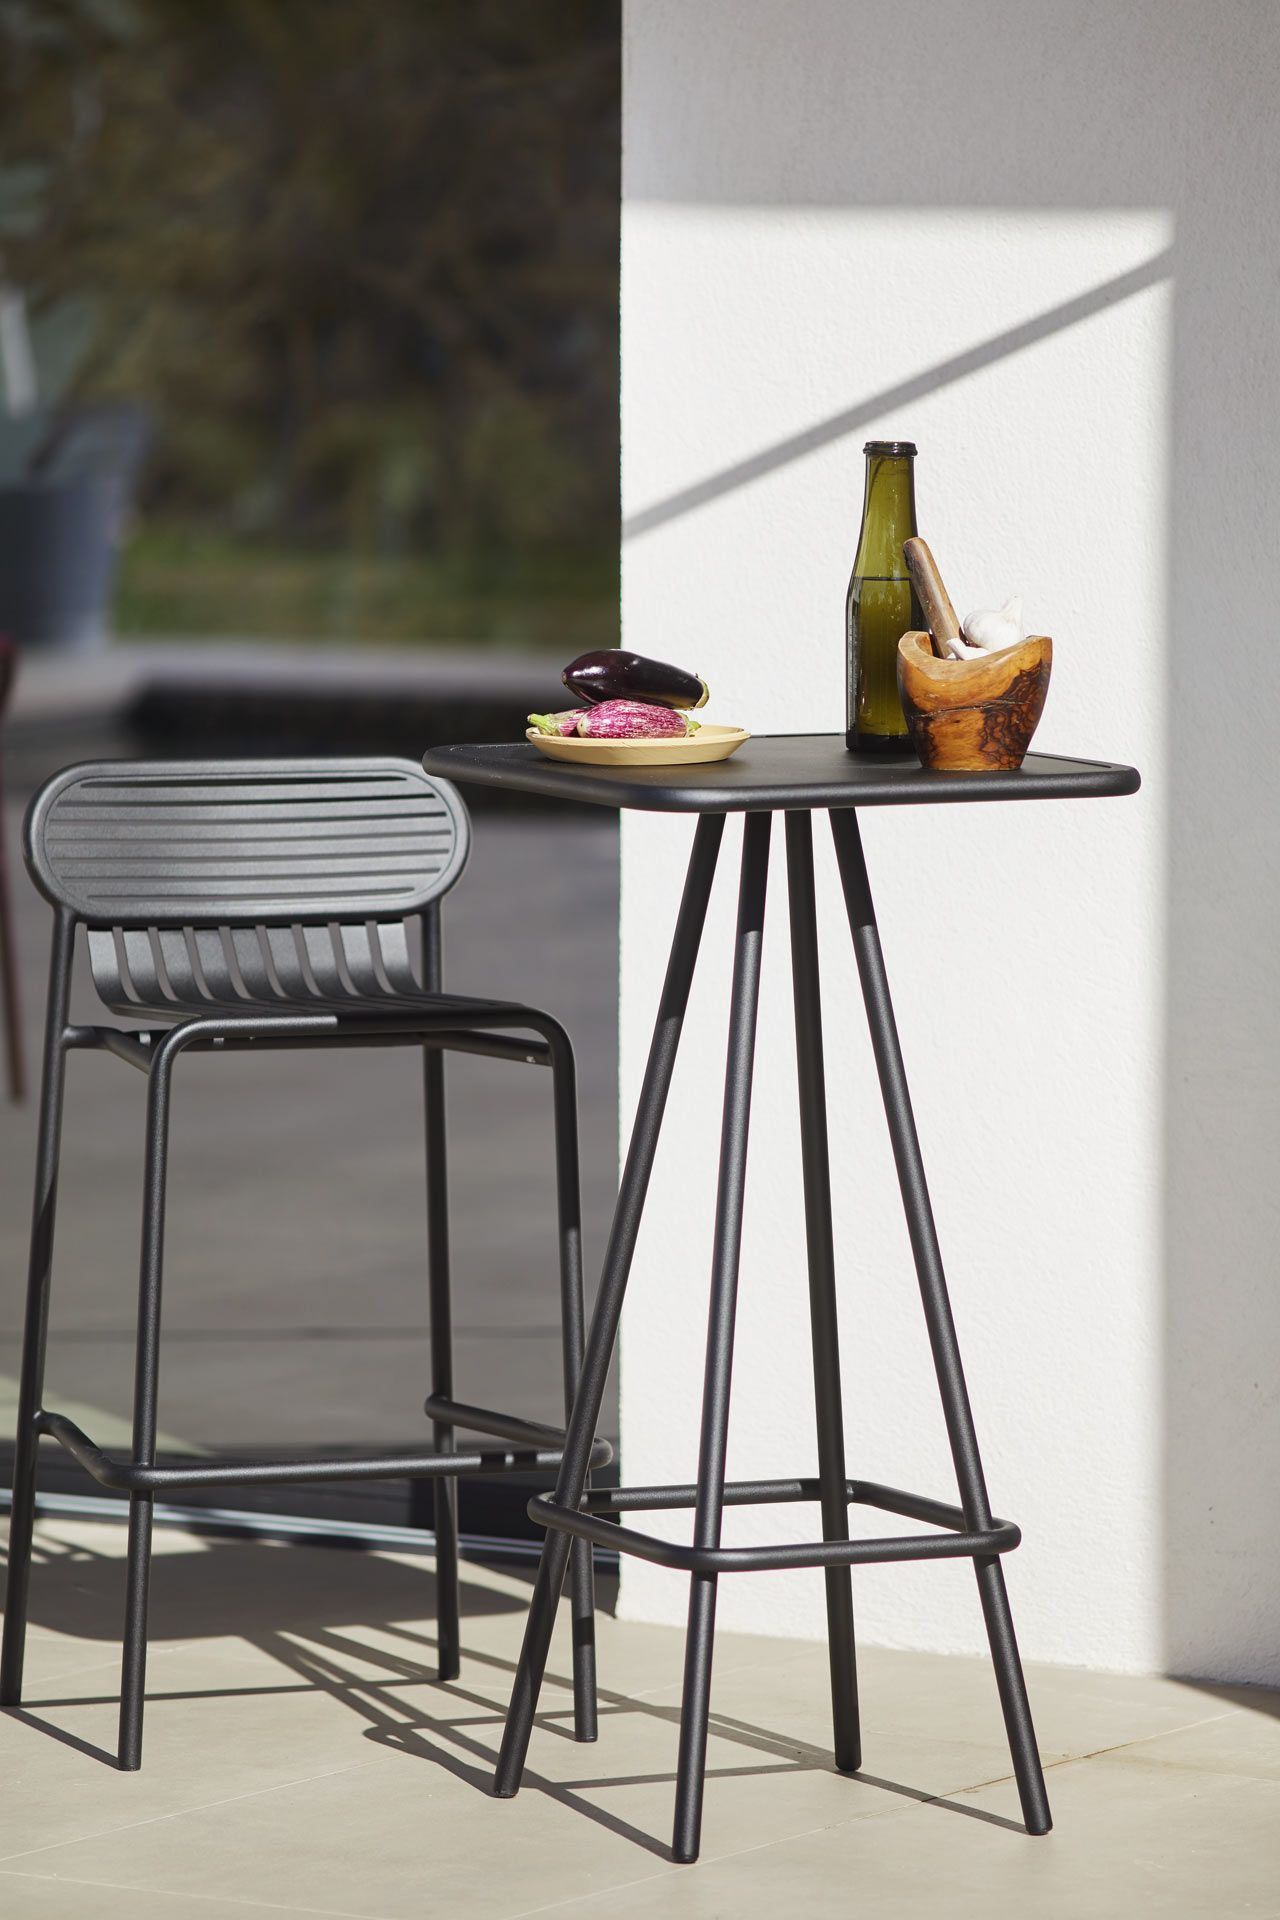 Balkonhocker The Outdoor Week End Collection By Studio Brichetziegler For